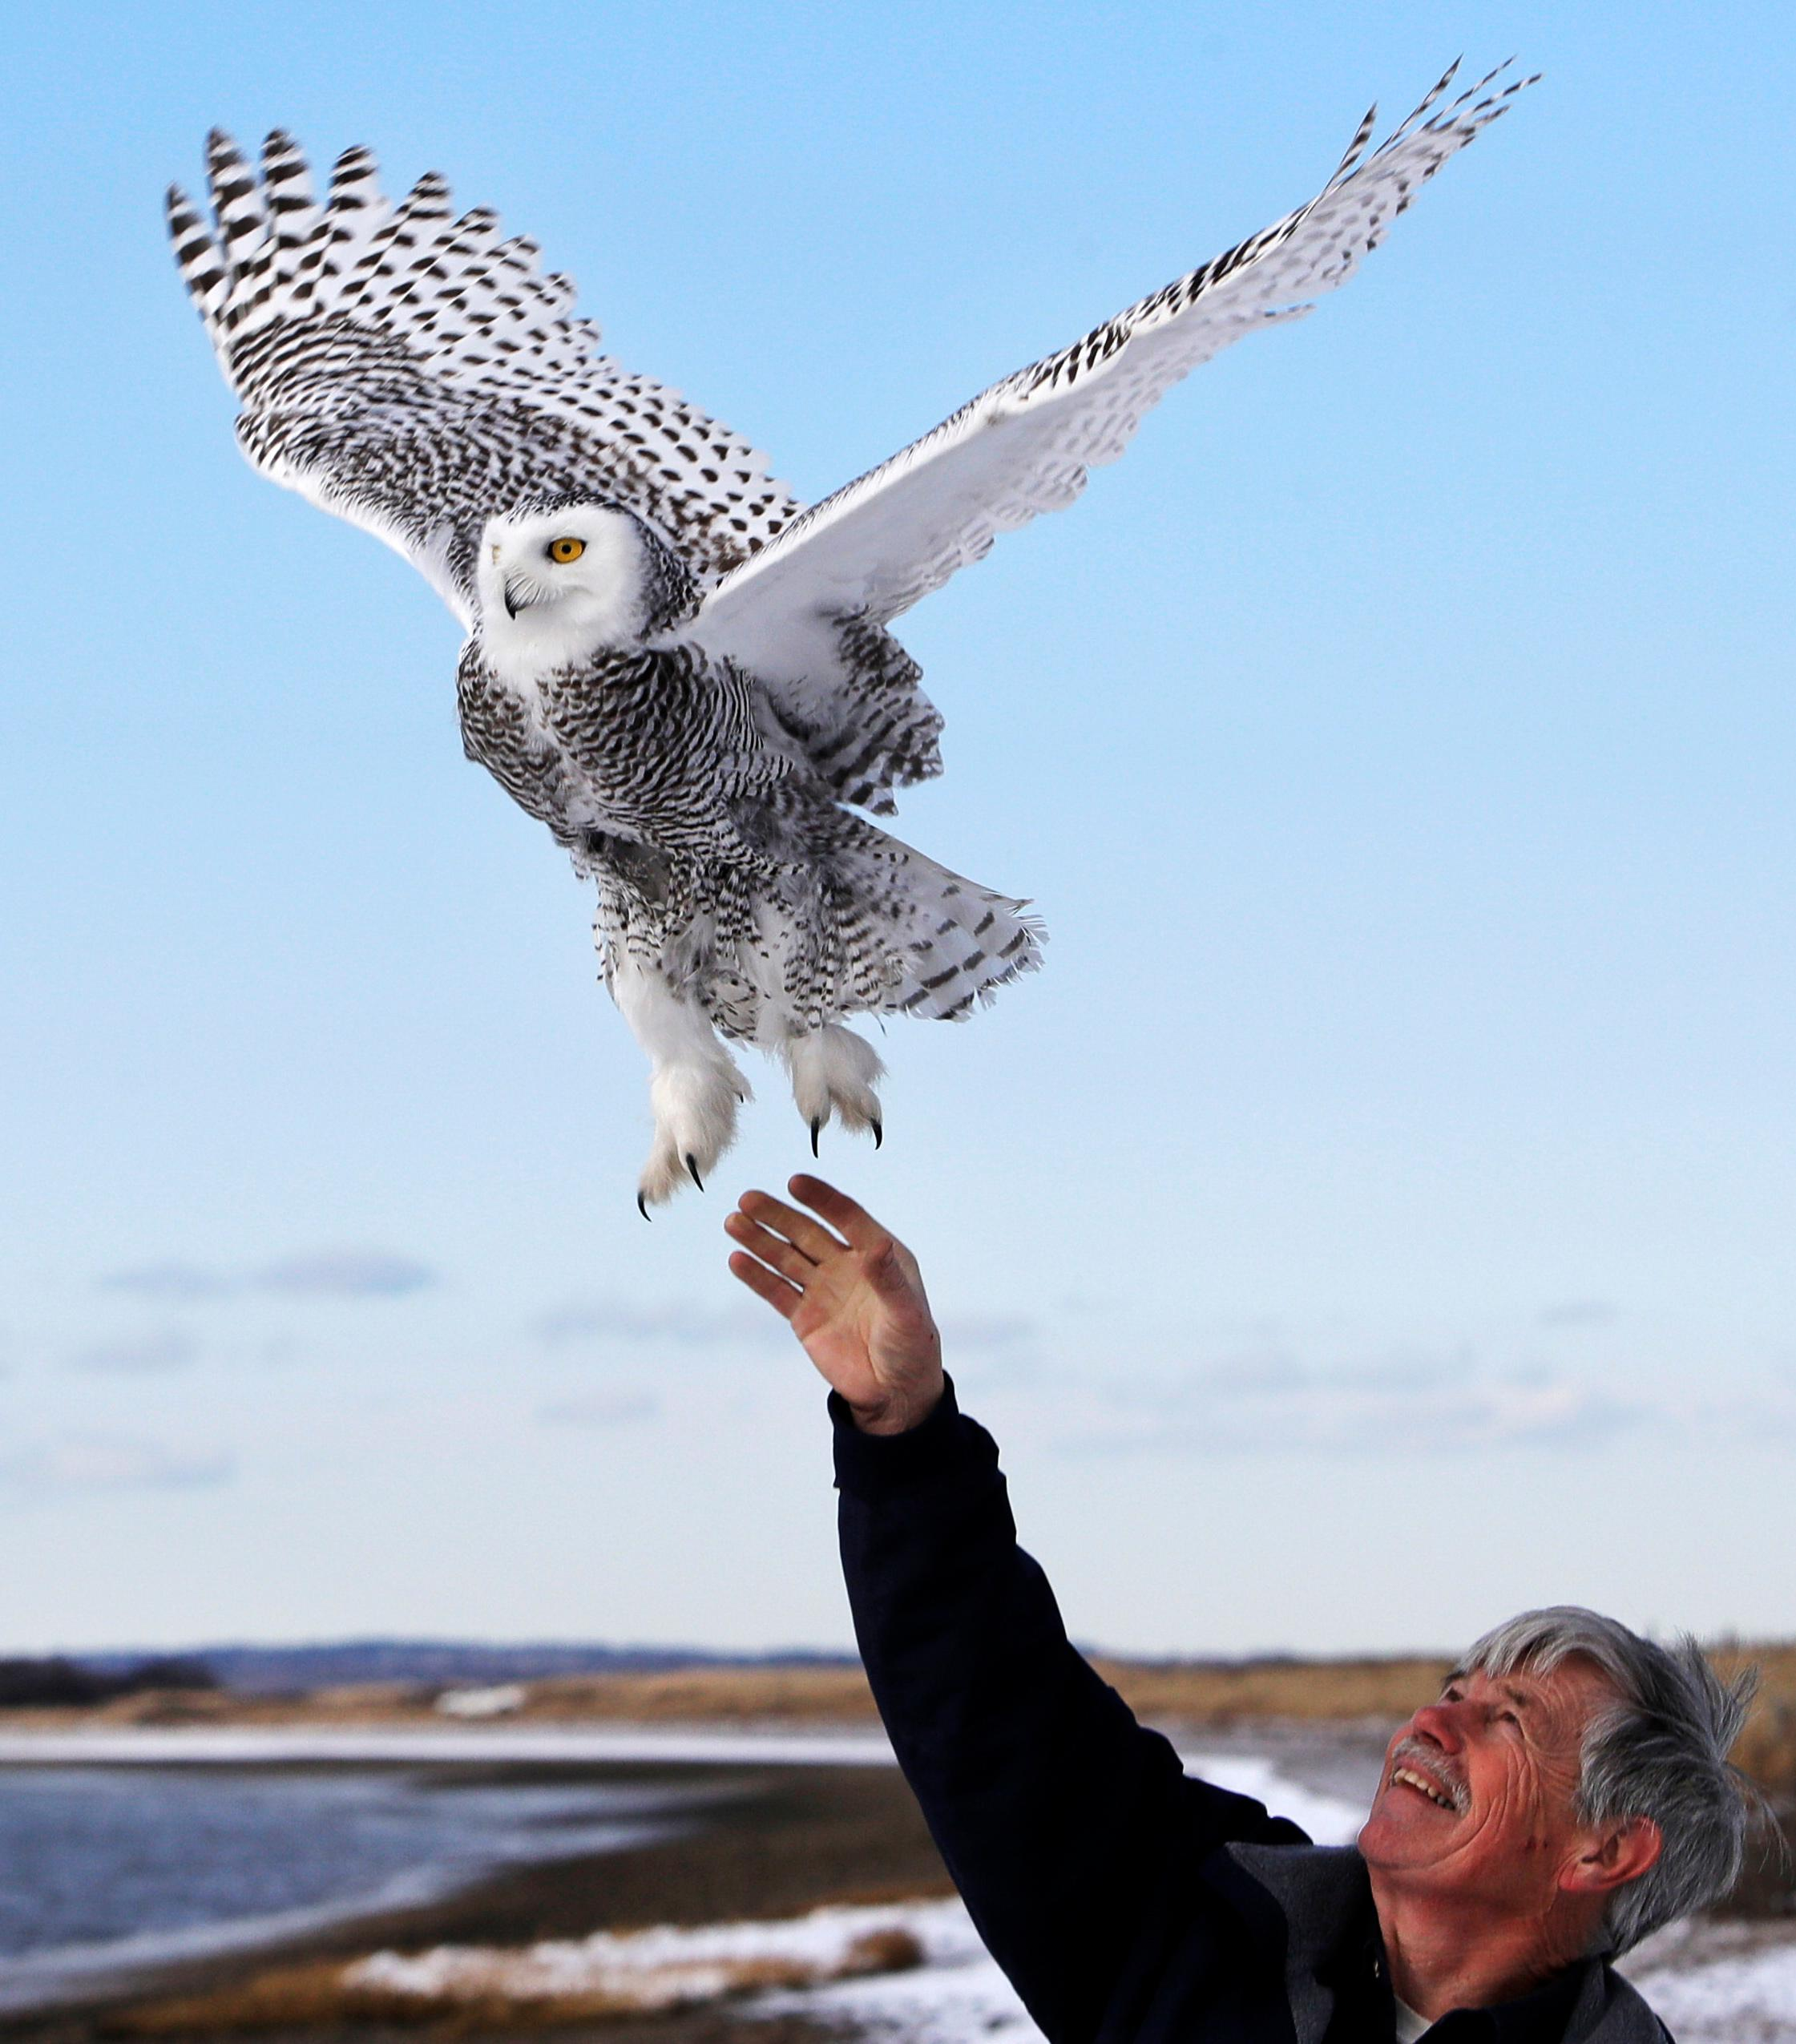 In this Dec. 14, 2017 photo, Norman Smith, director of Mass Audubon's Blue Hills Trailside Museum, releases a snowy owl along the shore of Duxbury Beach in Duxbury, Mass. The owl is one of 14 trapped so far this winter at Boston's Logan Airport and moved to the beach on Cape Cod Bay. (AP Photo/Charles Krupa)